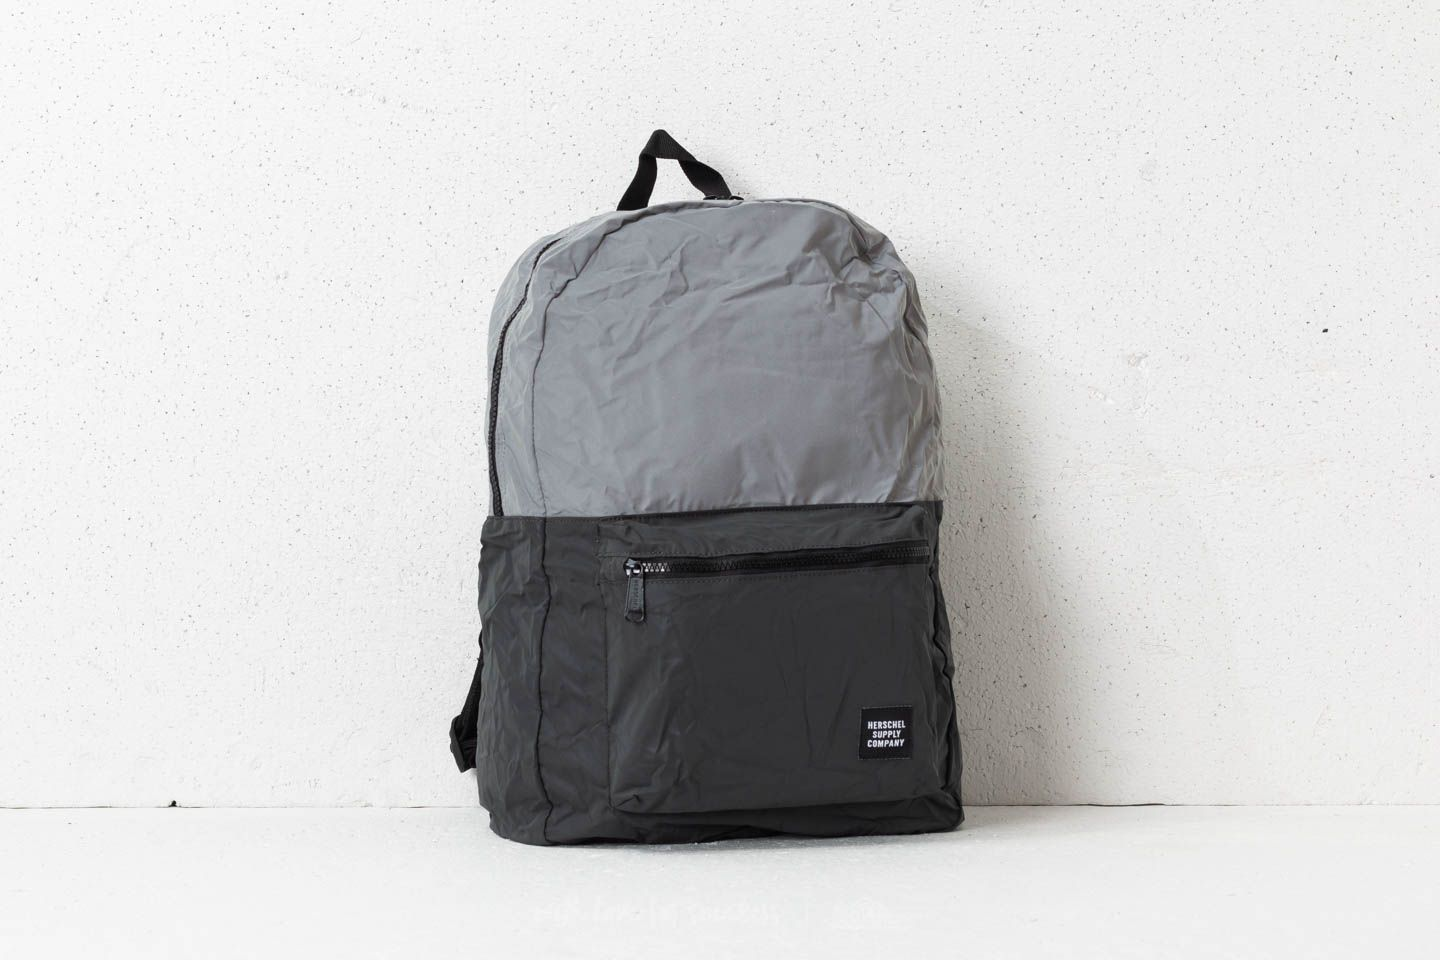 afa3d0141734 Herschel Supply Co. Packable Daypack Silver  Black Reflective at a great  price  30 buy